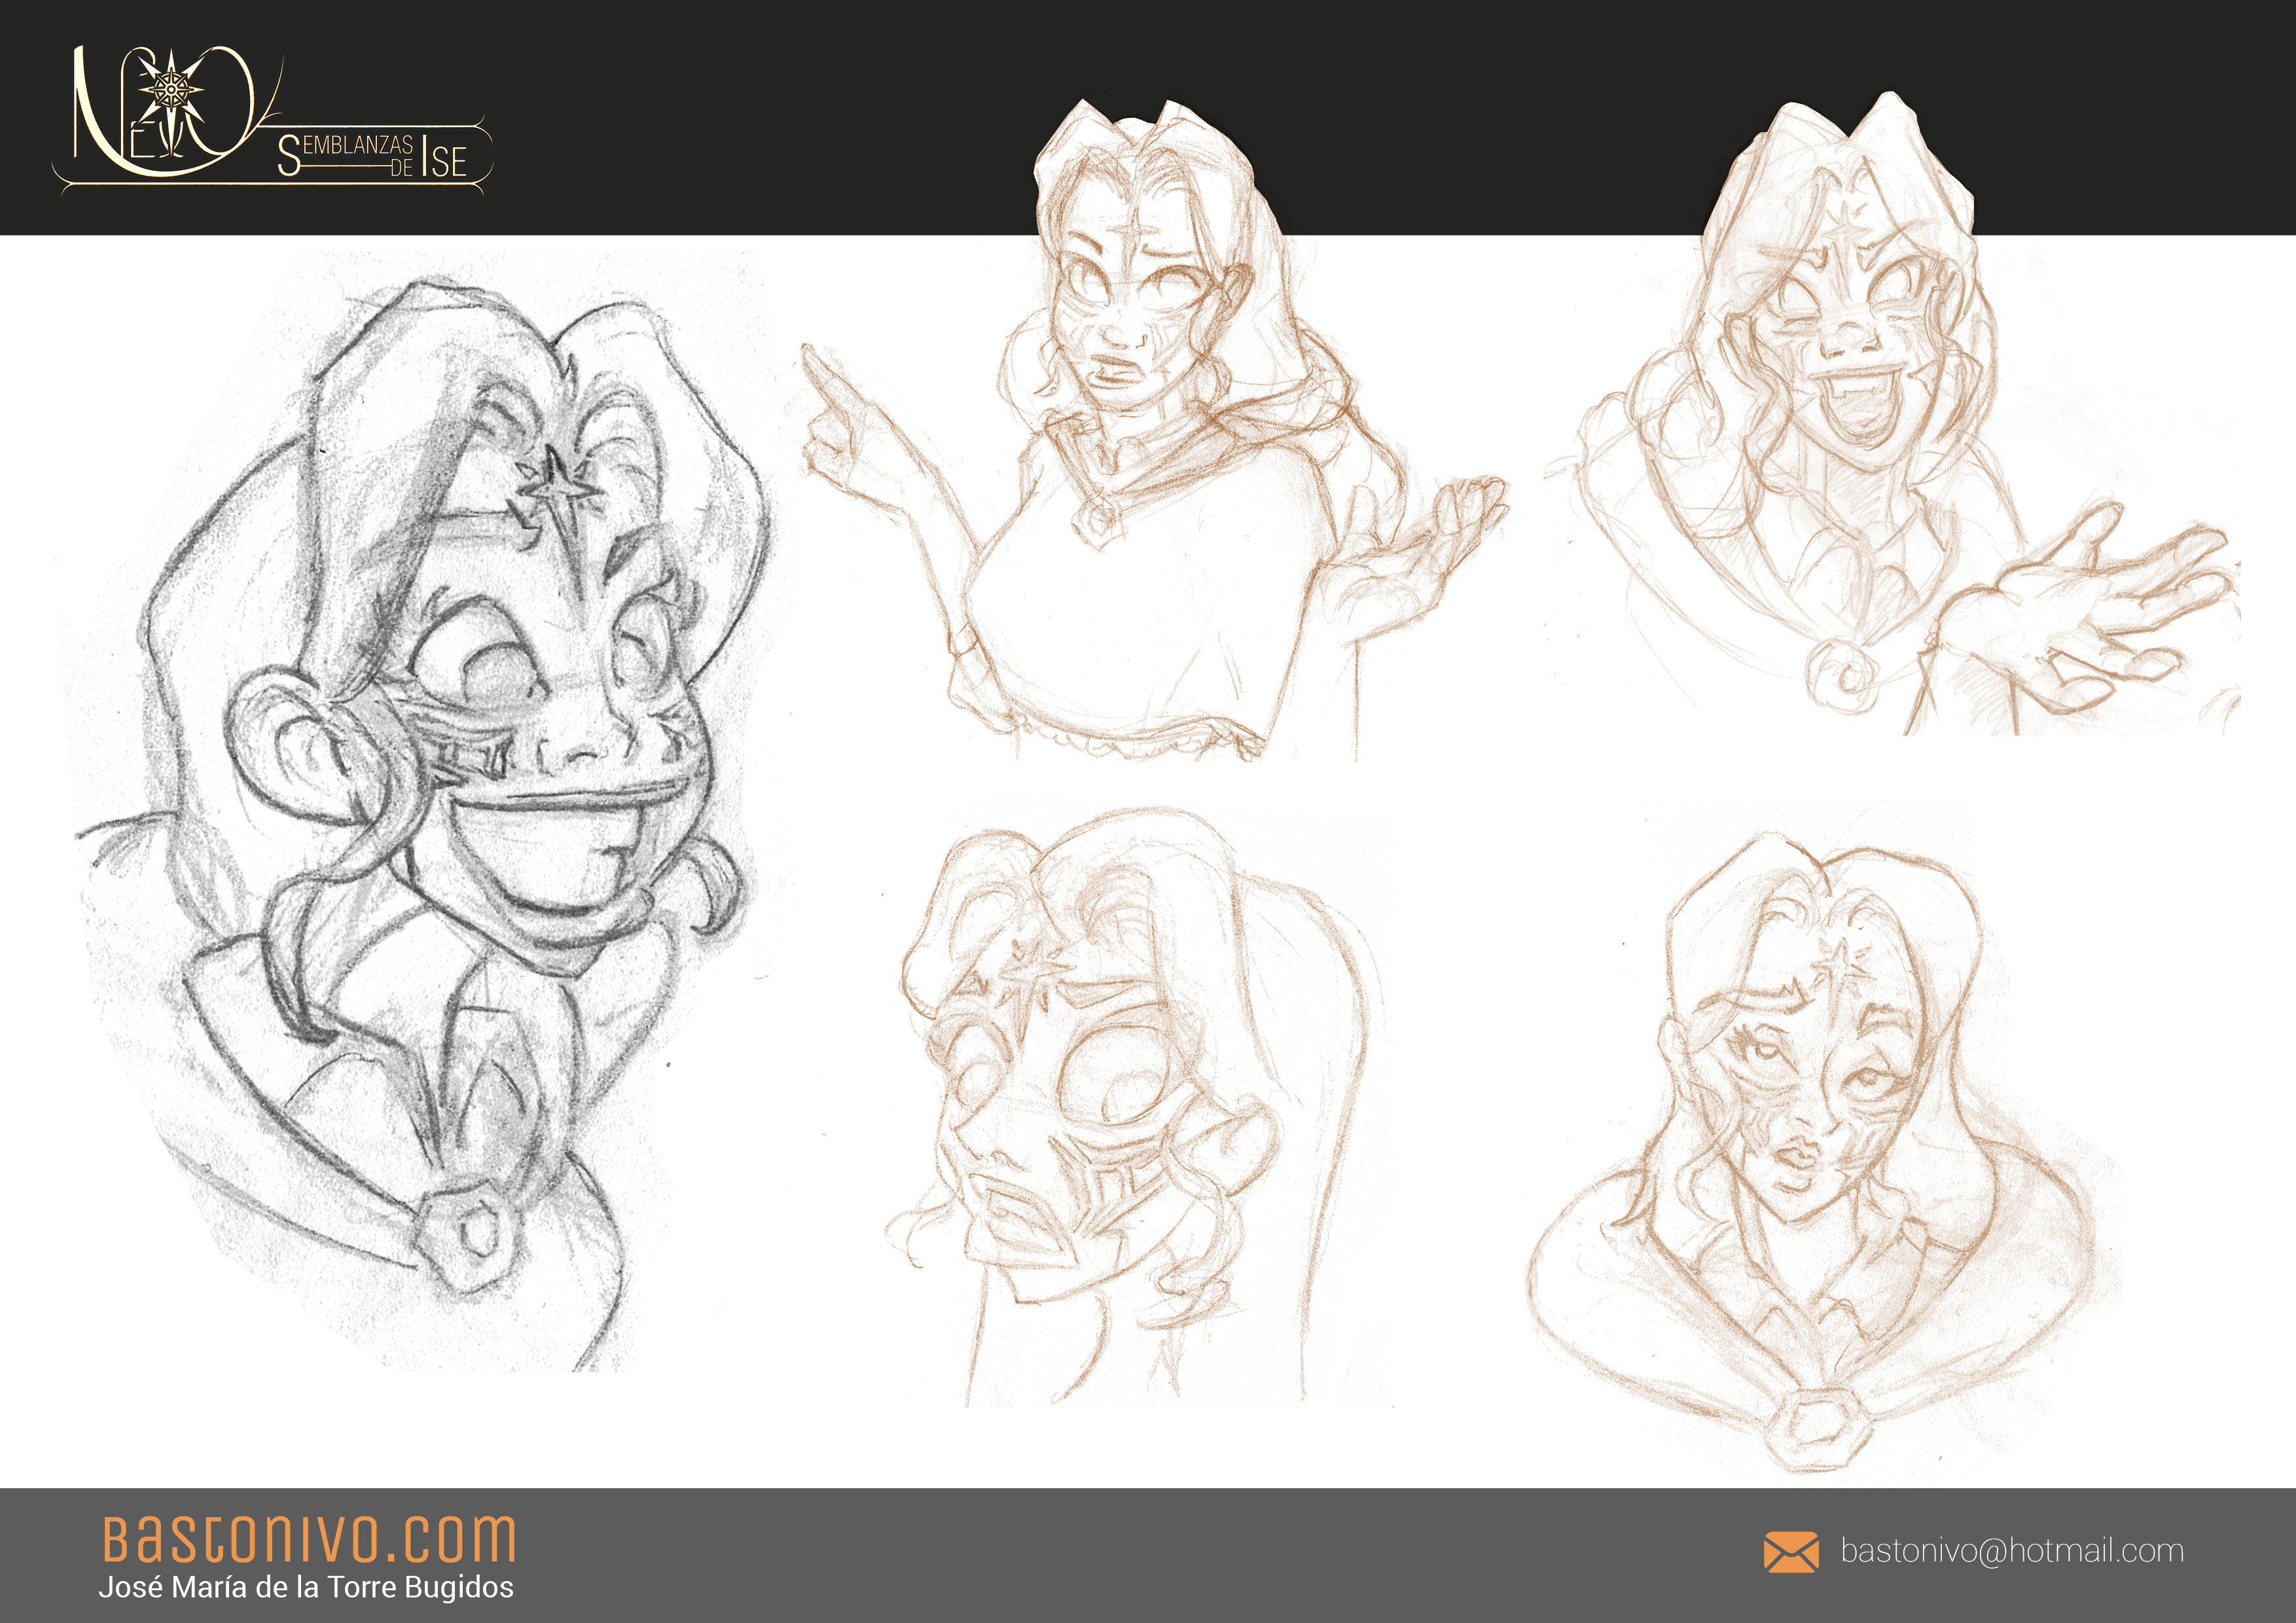 Laerela's stylized sketches